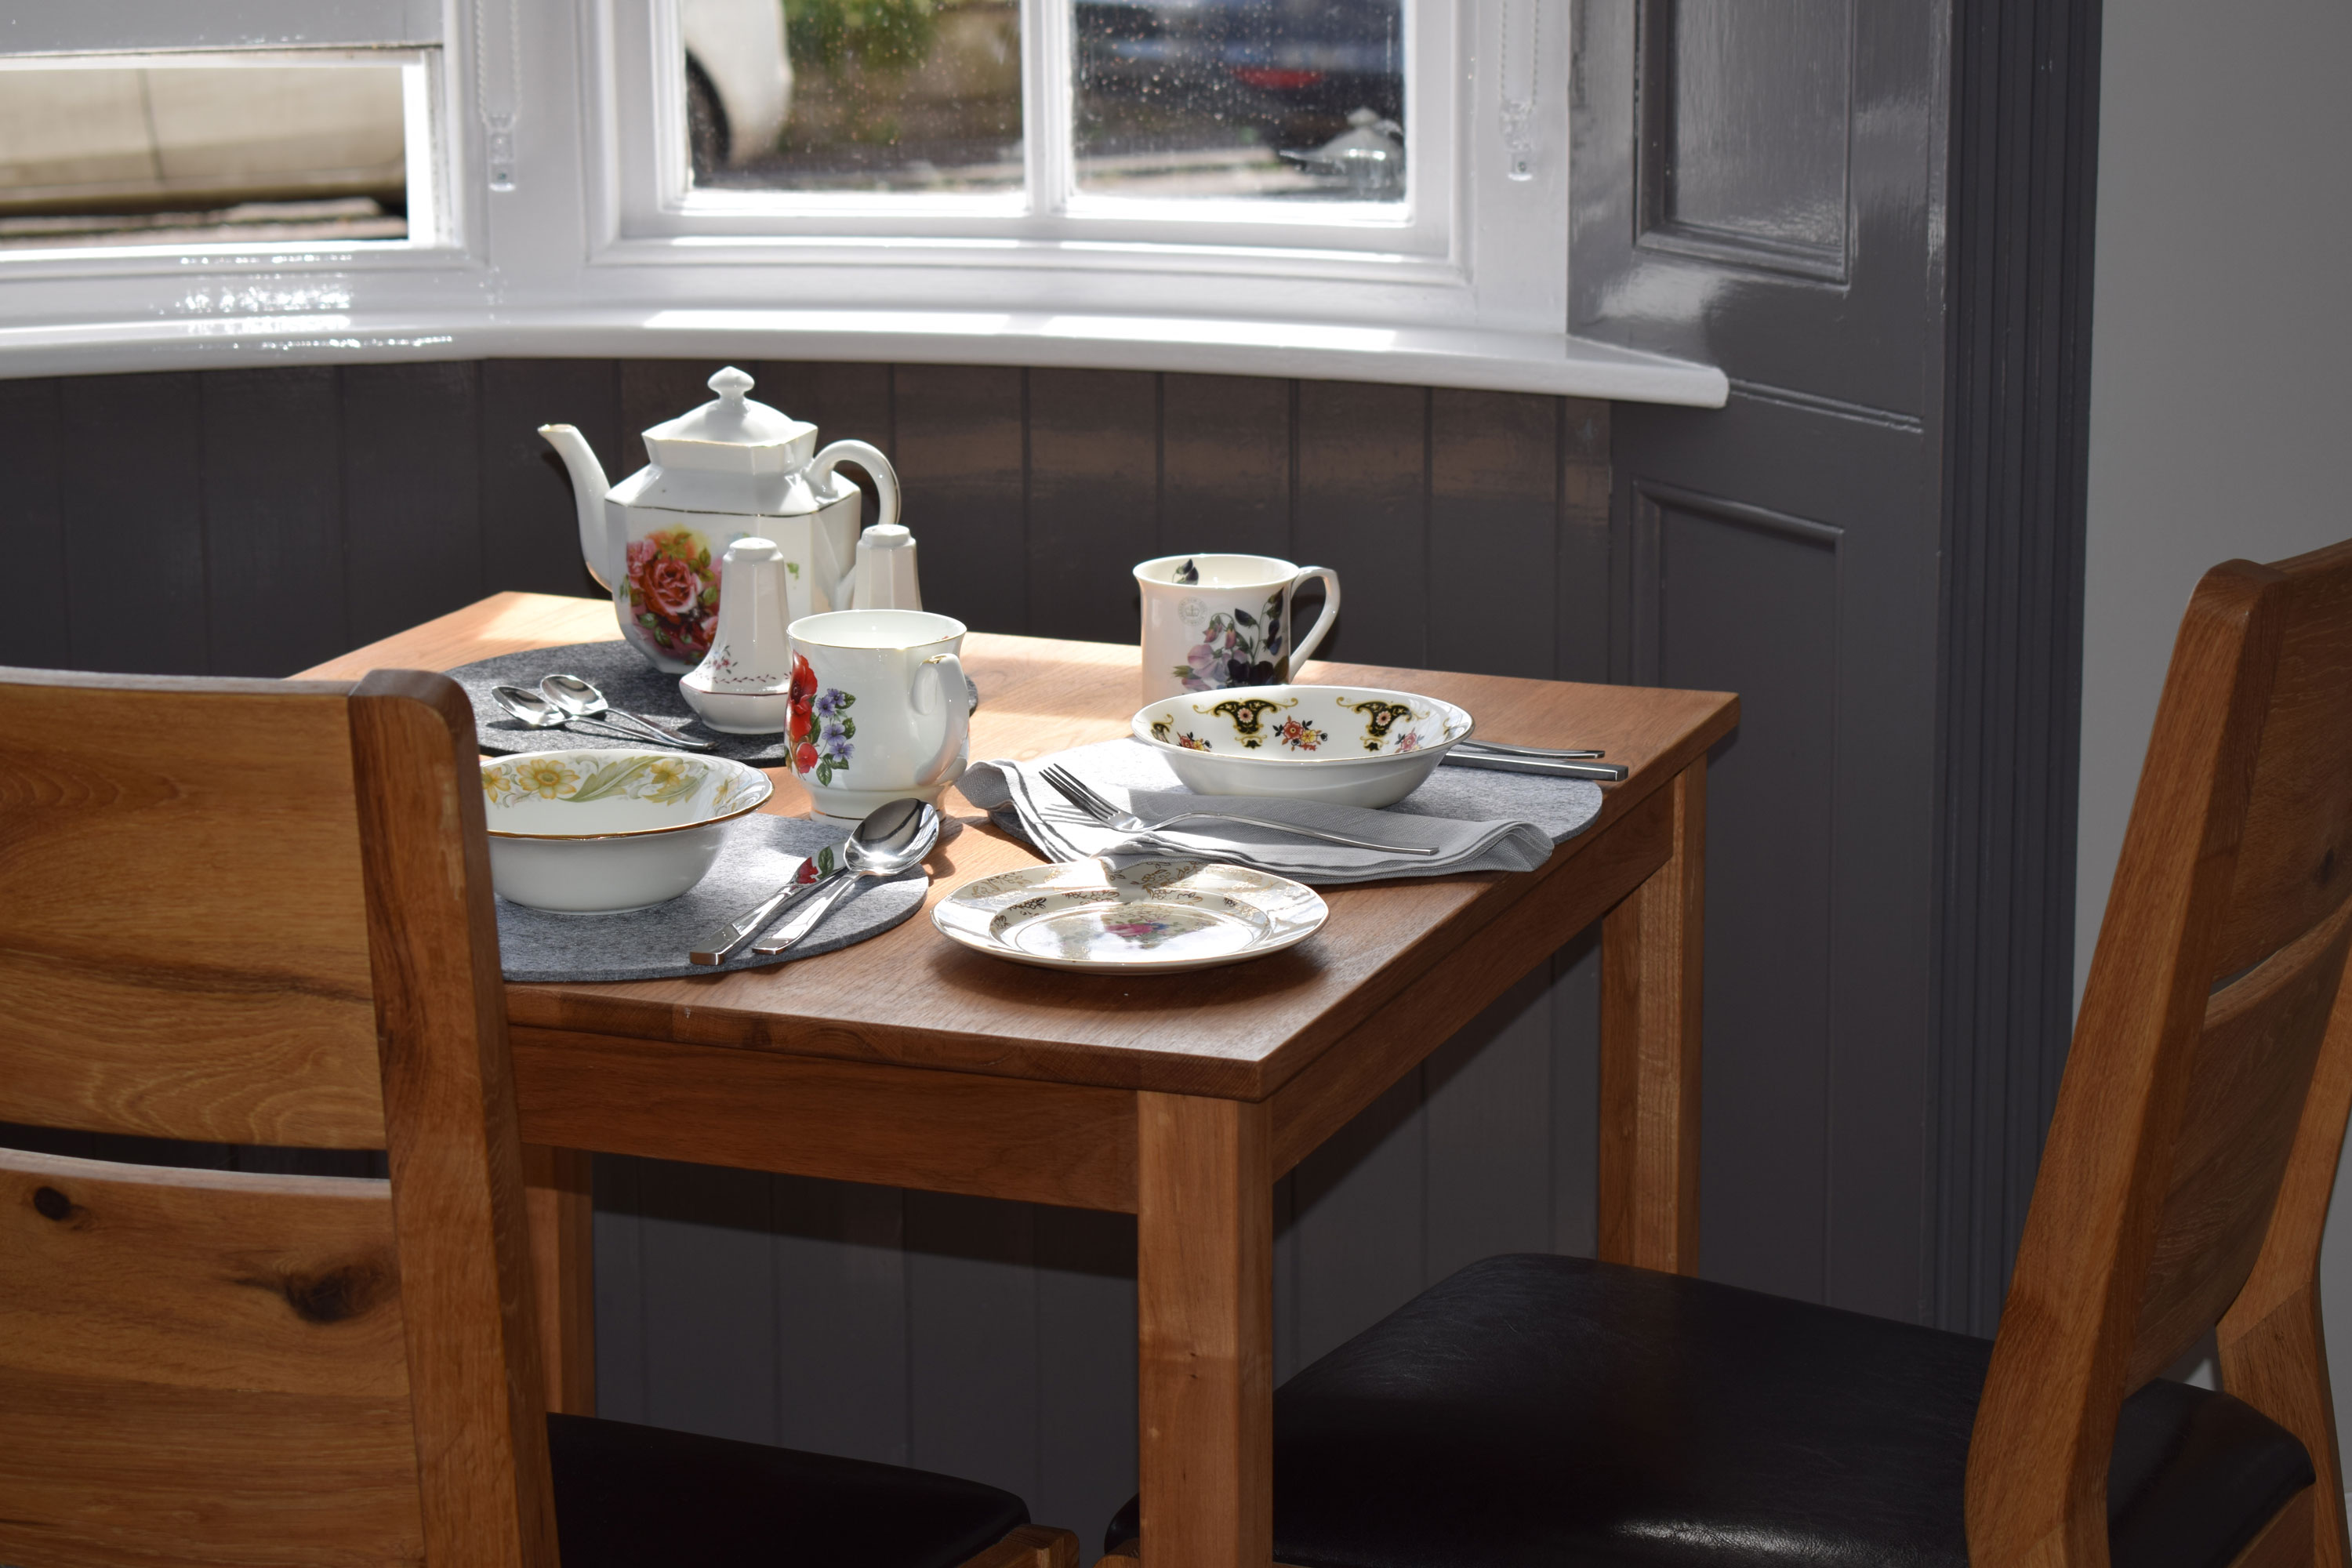 Bed and Breakfast Weymouth Dorset The View on The Terrace Sea views